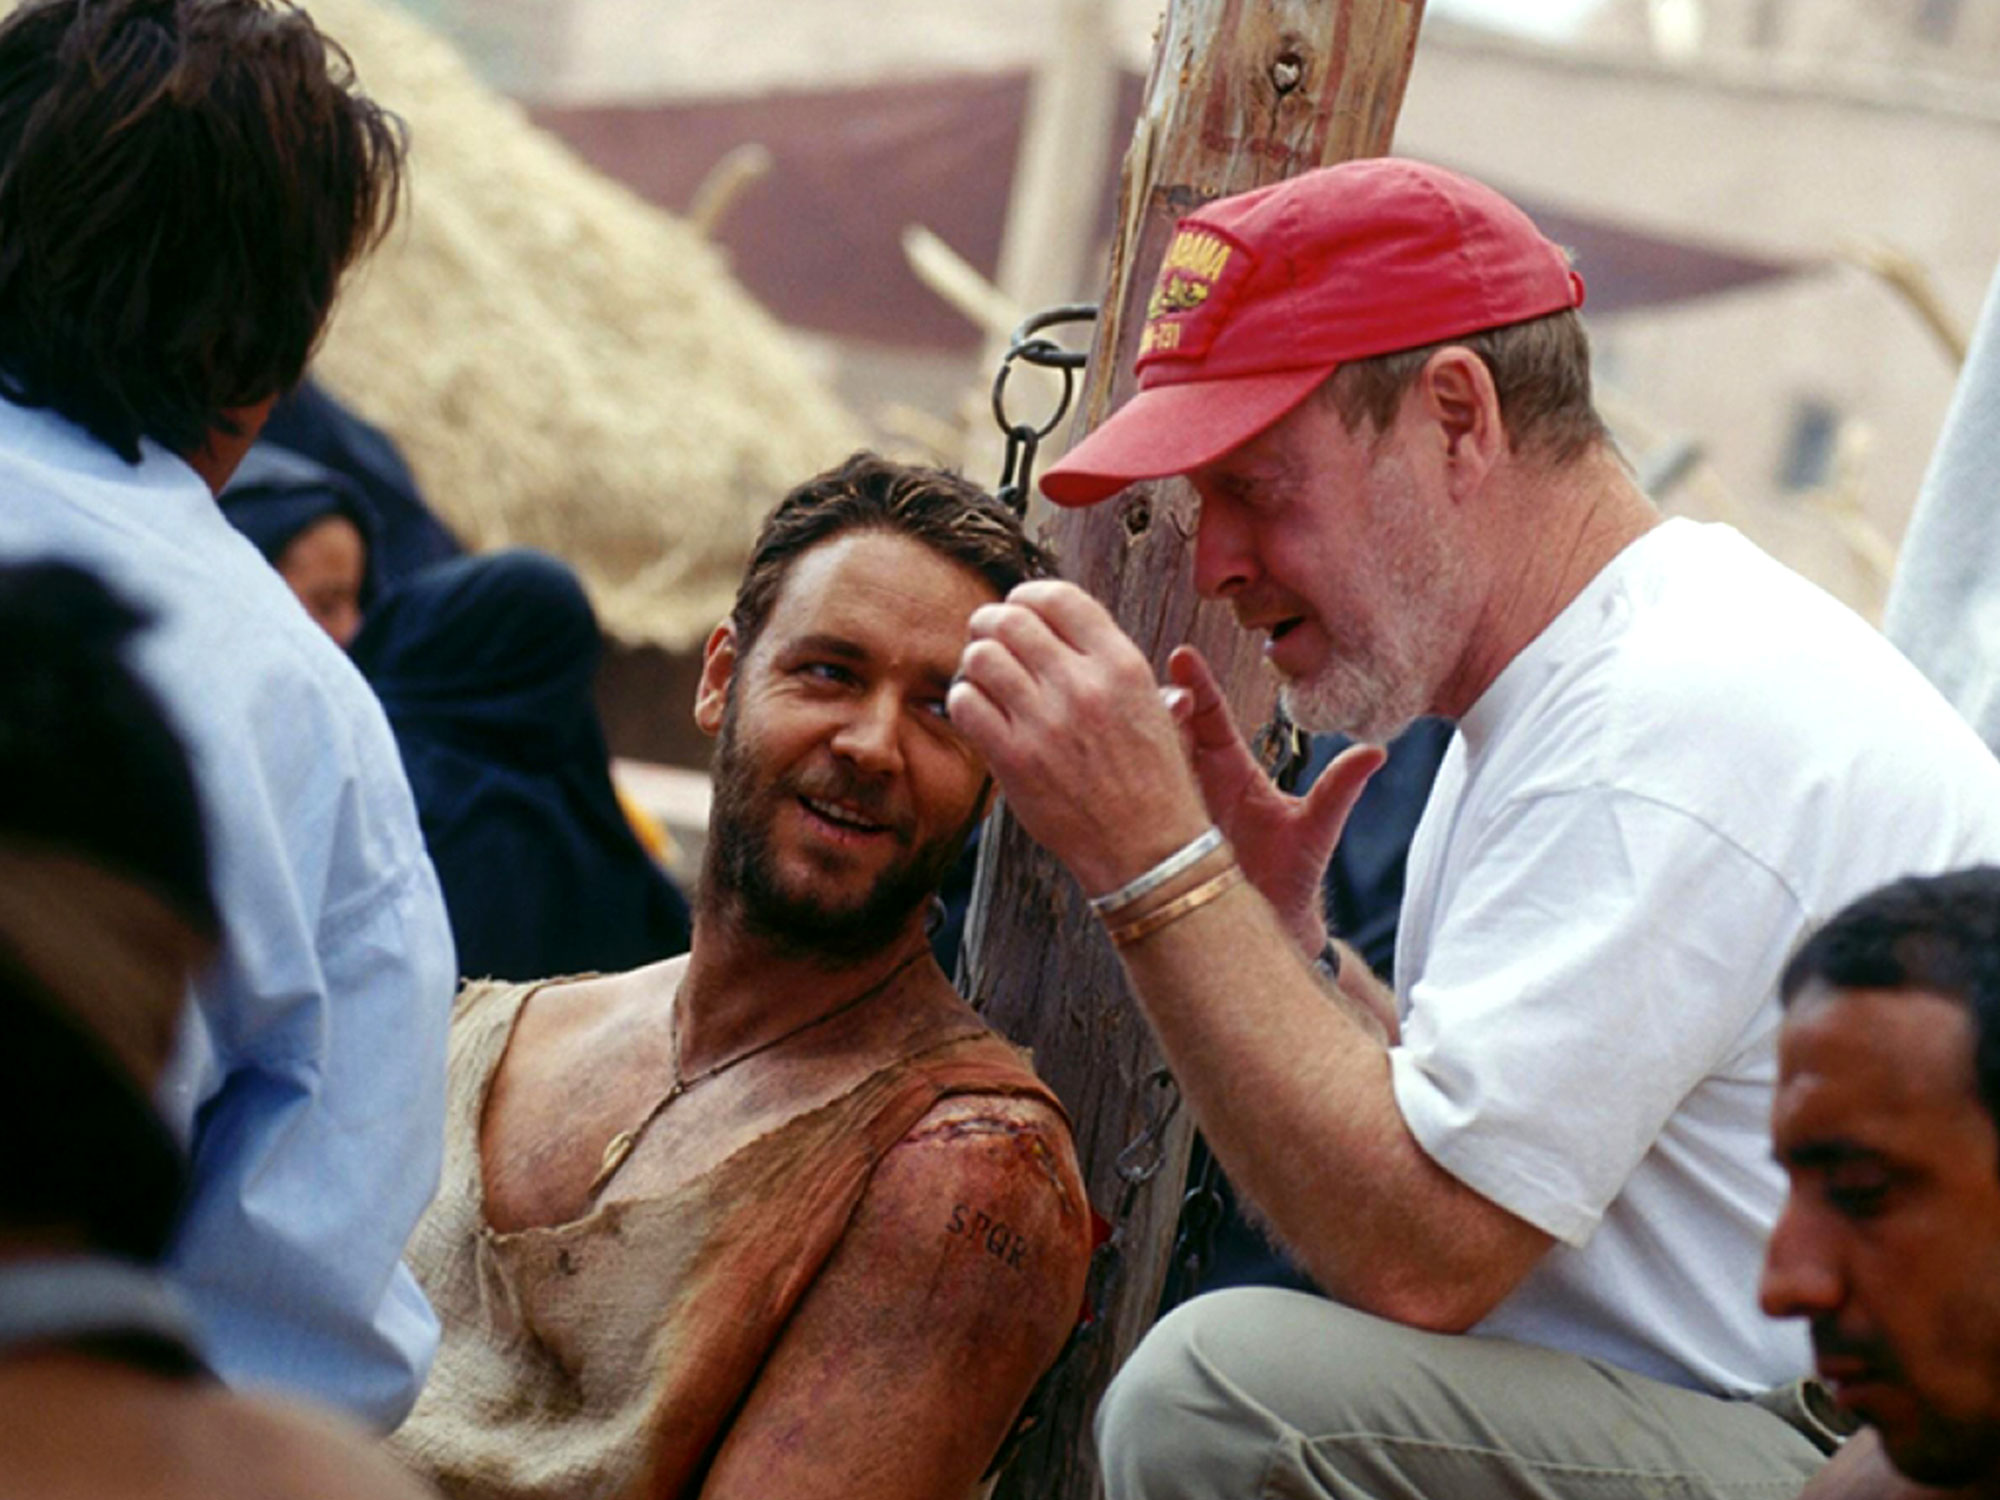 Russell Crowe and Ridley Scott on the set of Gladiator (2000)